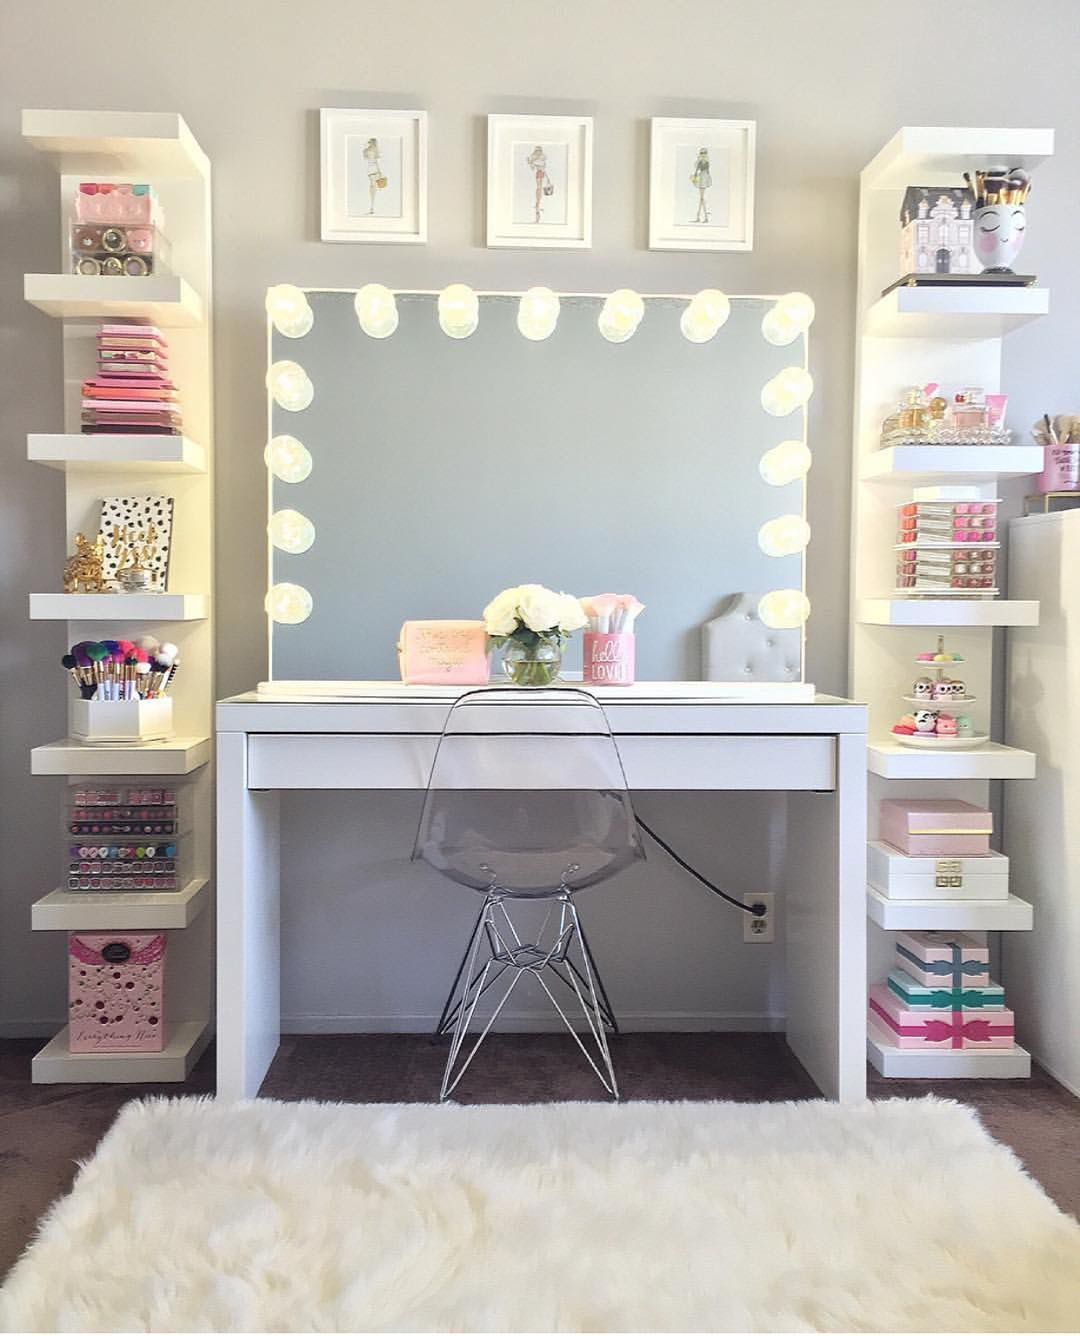 Bed room. Pin by Kristen Bang on Makeup Organization   Pinterest   Room